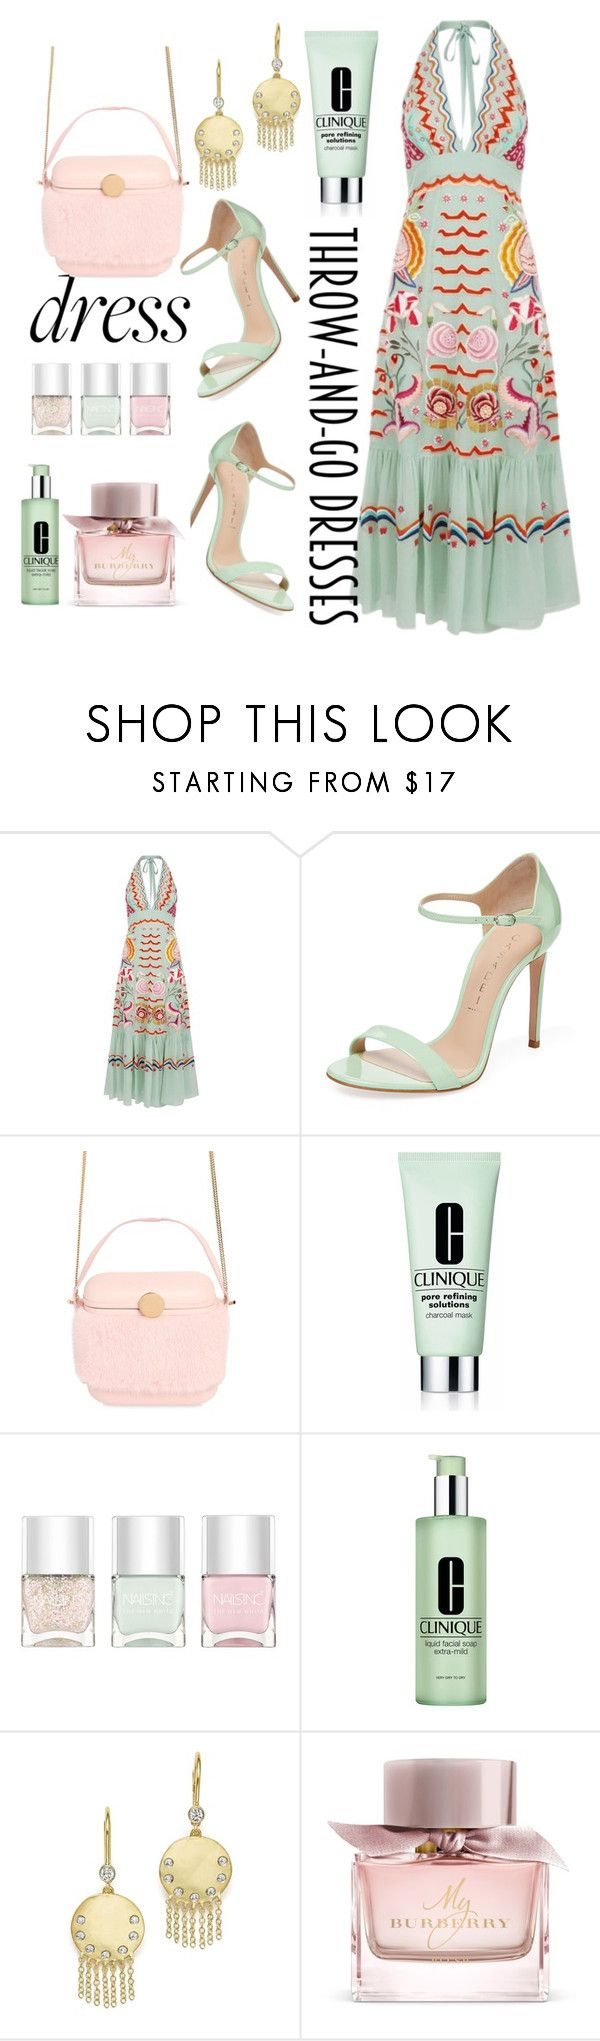 """""""throw and go dresses #contest"""" by foufasher ❤ liked on Polyvore featuring Temperley London, Casadei, Benedetta Bruzziches, Clinique, Nails Inc., Meira T and Burberry"""